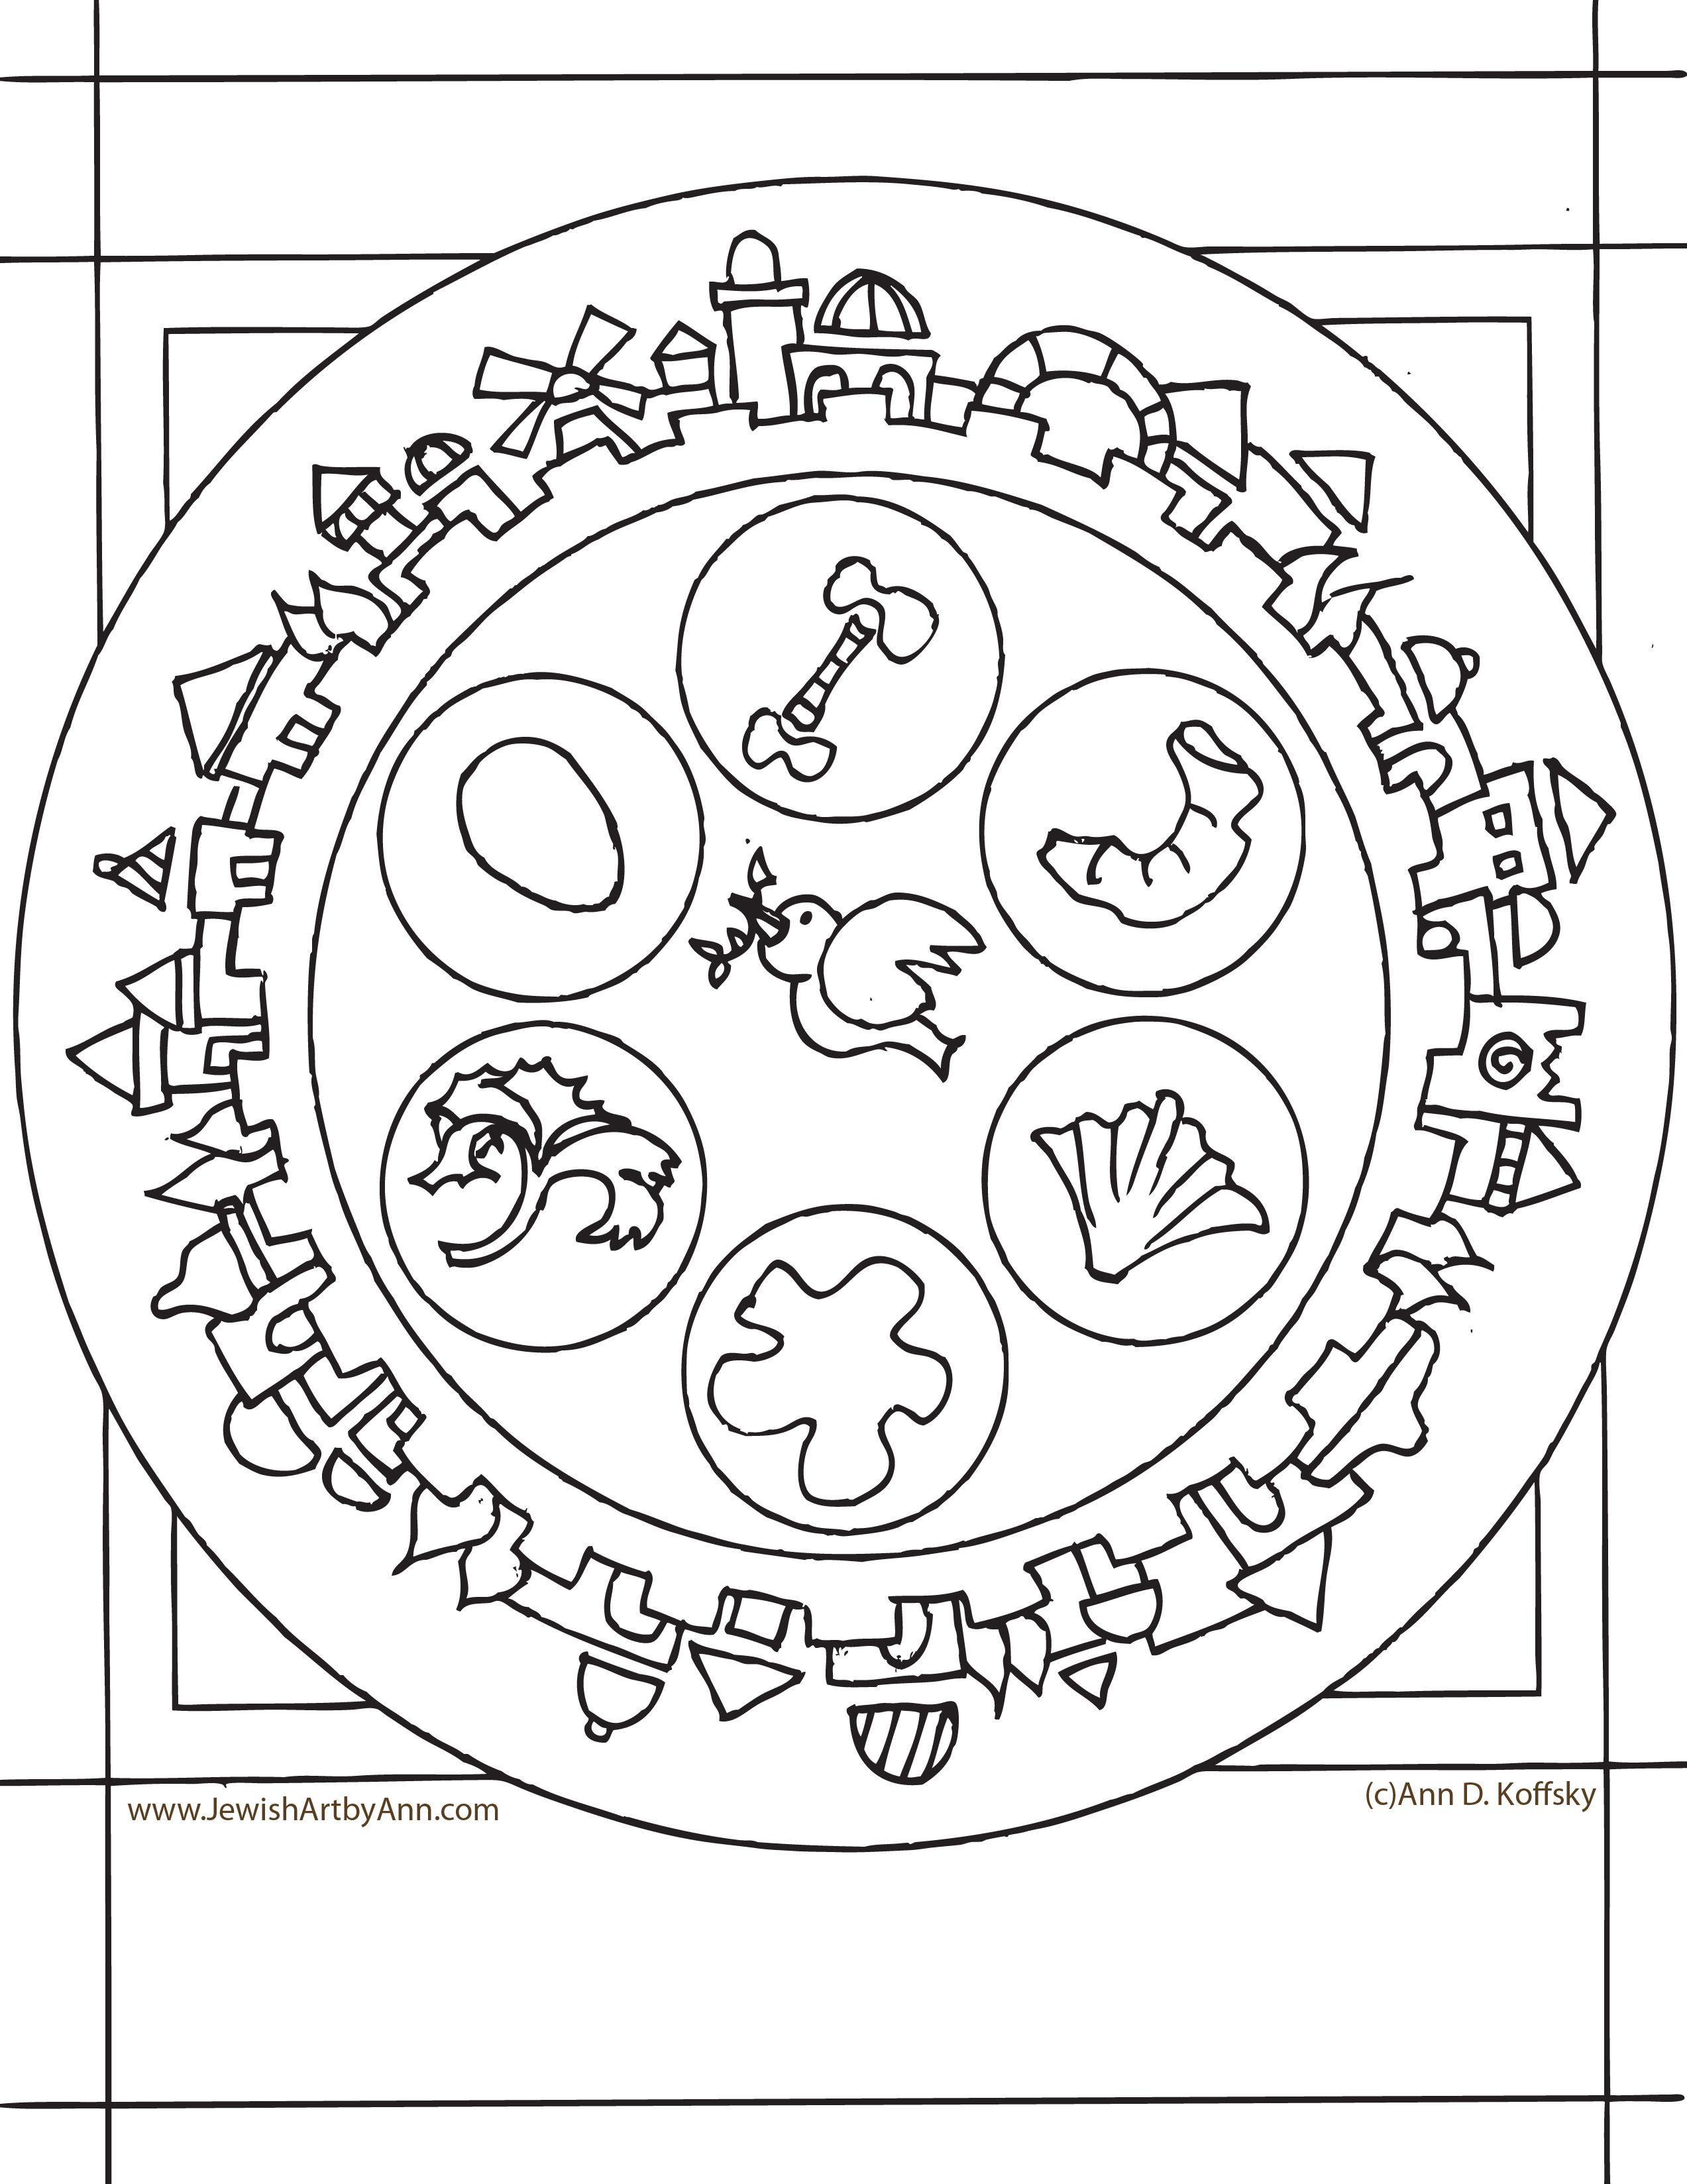 Ann Koffsky Passover Plate Coloring Page